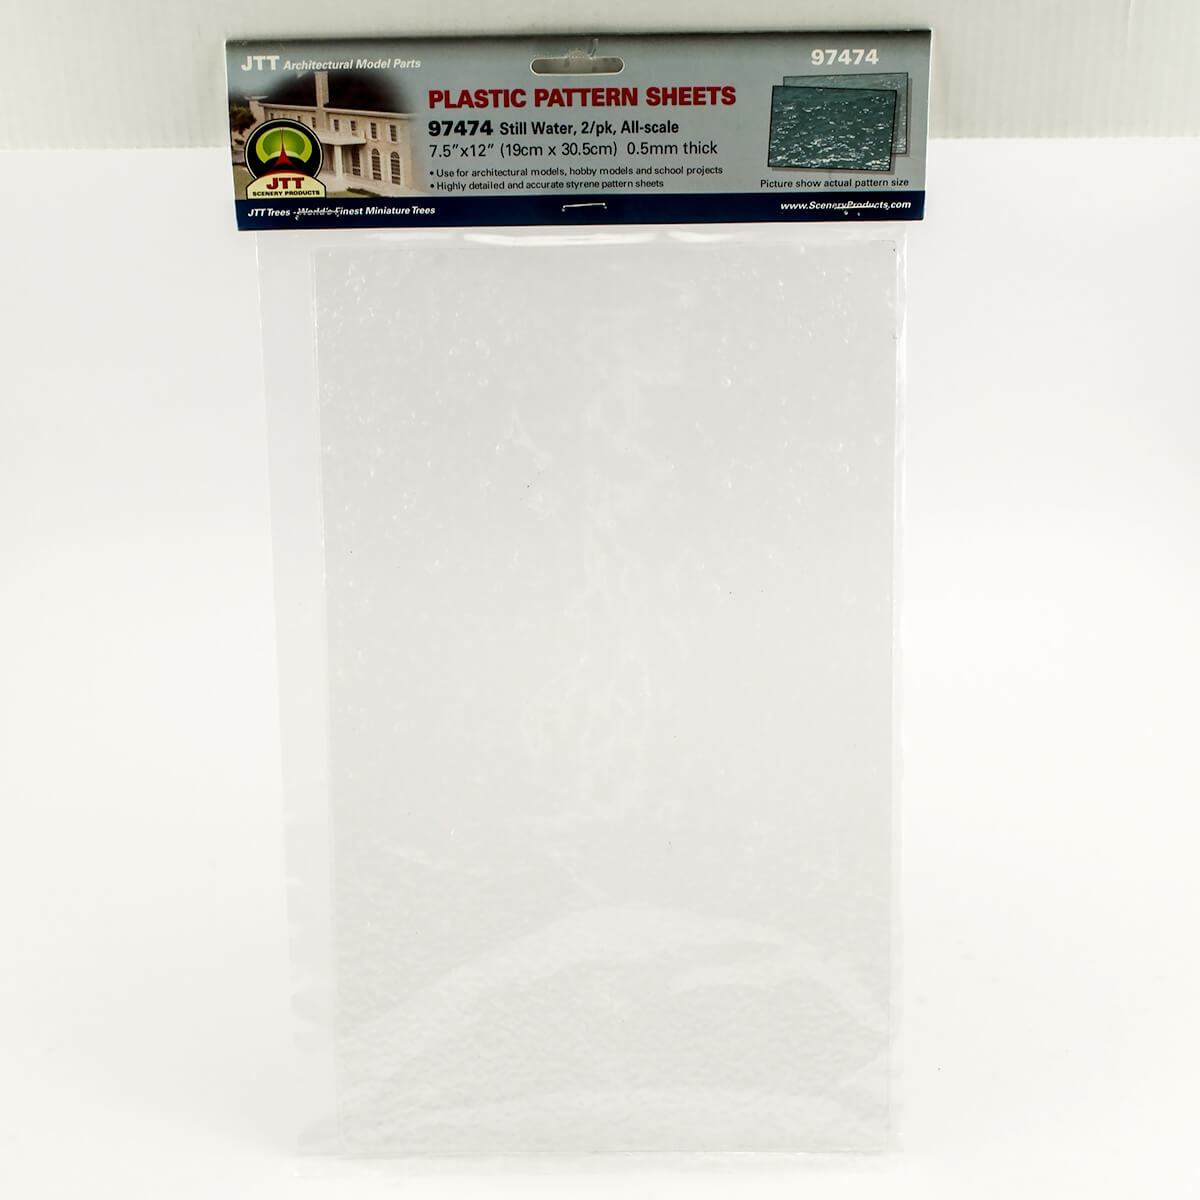 JTT 97474 3MM Wave Still Water Plastic Pattern Sheet, 2/pk